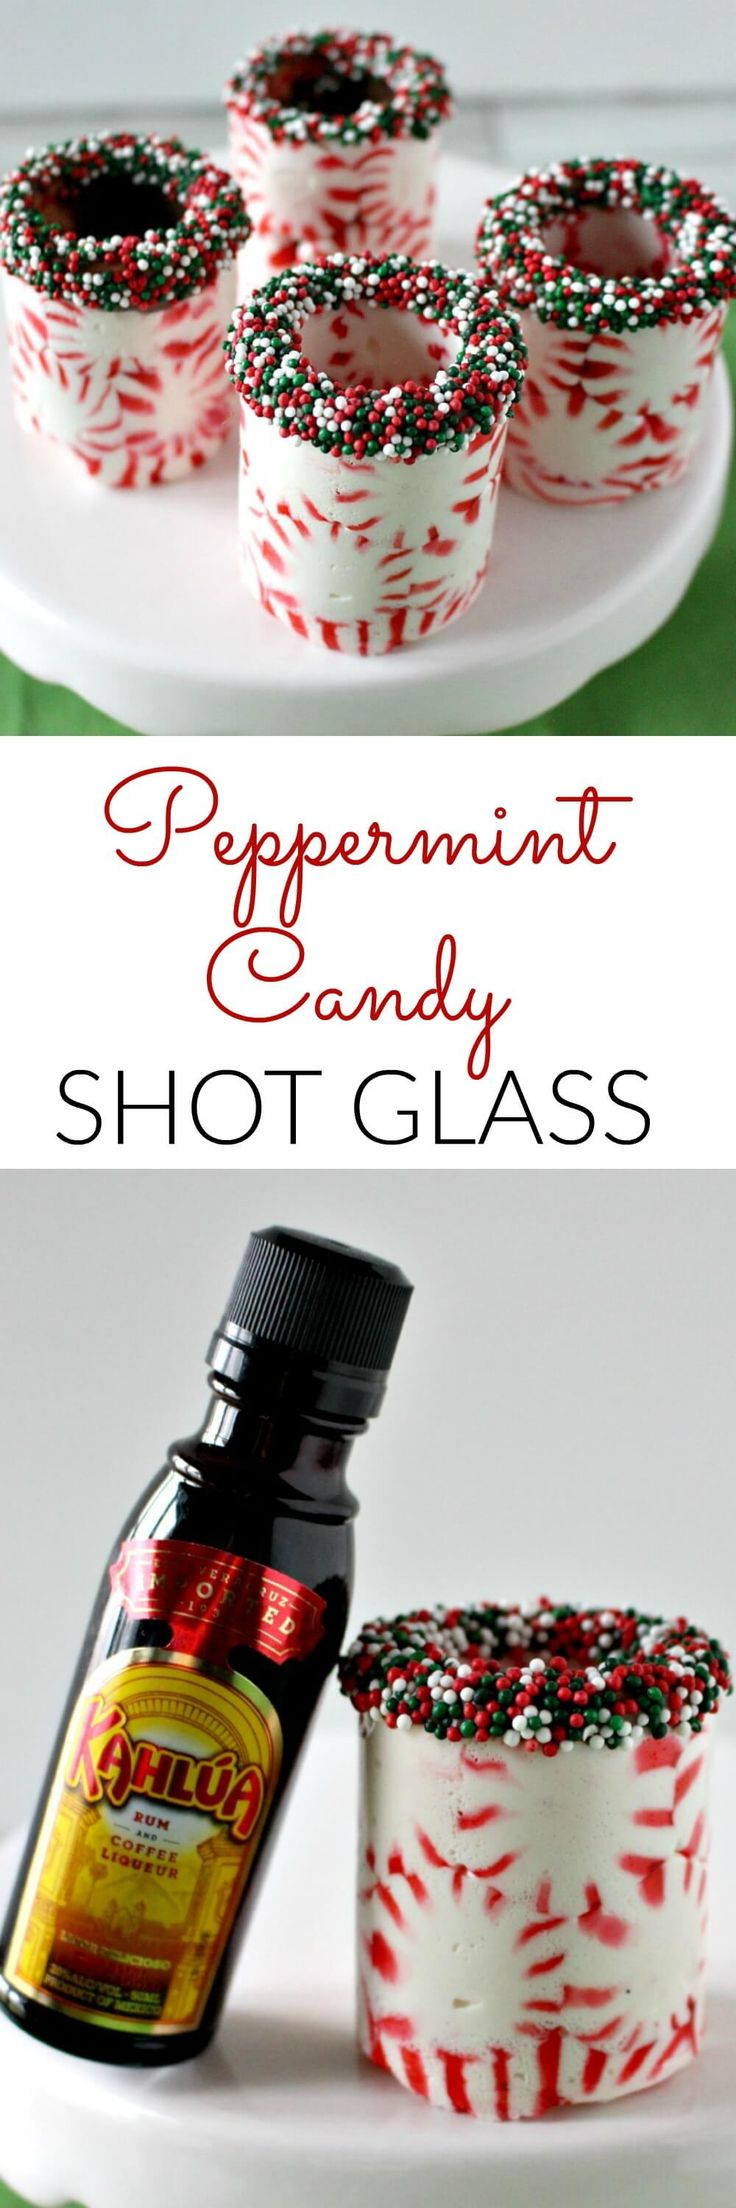 Peppermint Candy Shot Glass - Take 2! - Princess Pinky Girl